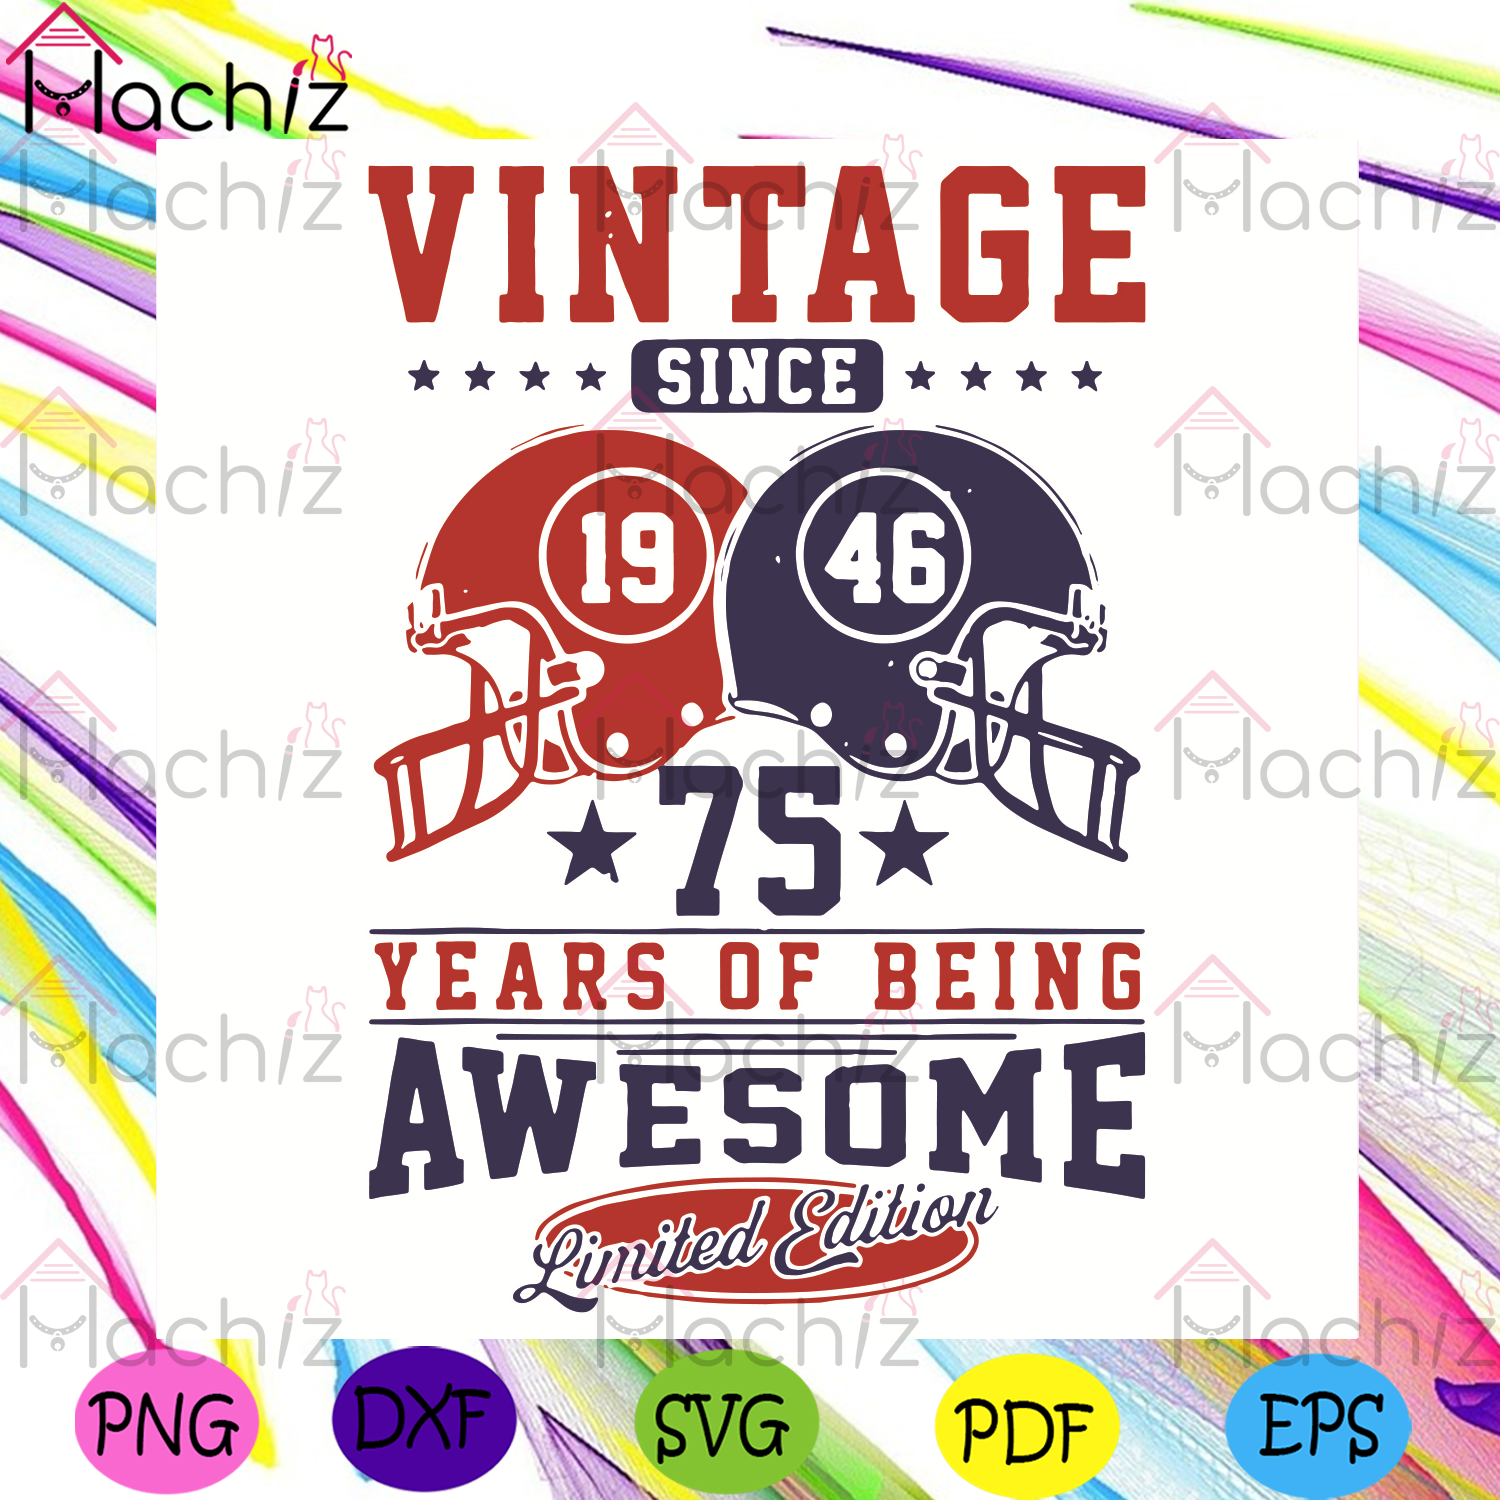 Vintage Since 1946 75 Years Of being Awesome Svg, Sport Svg, KC Football Team Svg, Buffalo Bills Football Team Svg American Football Team Svg, Football Helmet SVg, Football Svg, Football Team Svg, Champion Svg, Nfl Svg, Nfl Fans Svg